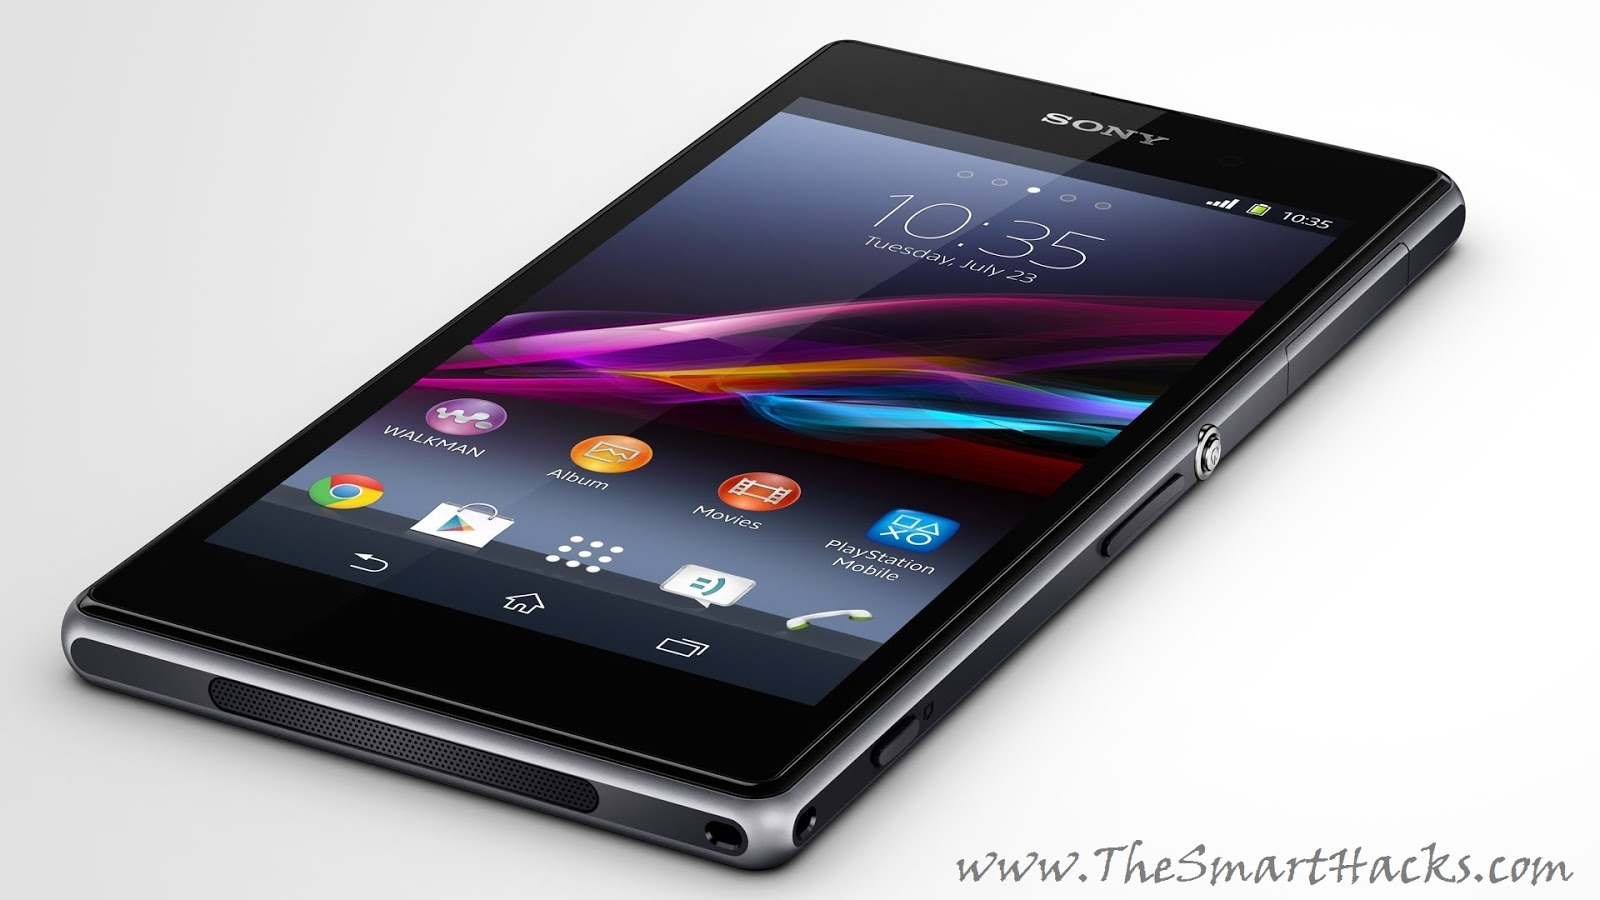 Posted by Anmol Jain Posted on 2 26 AM No commentsXperia Z1 Compact Lime